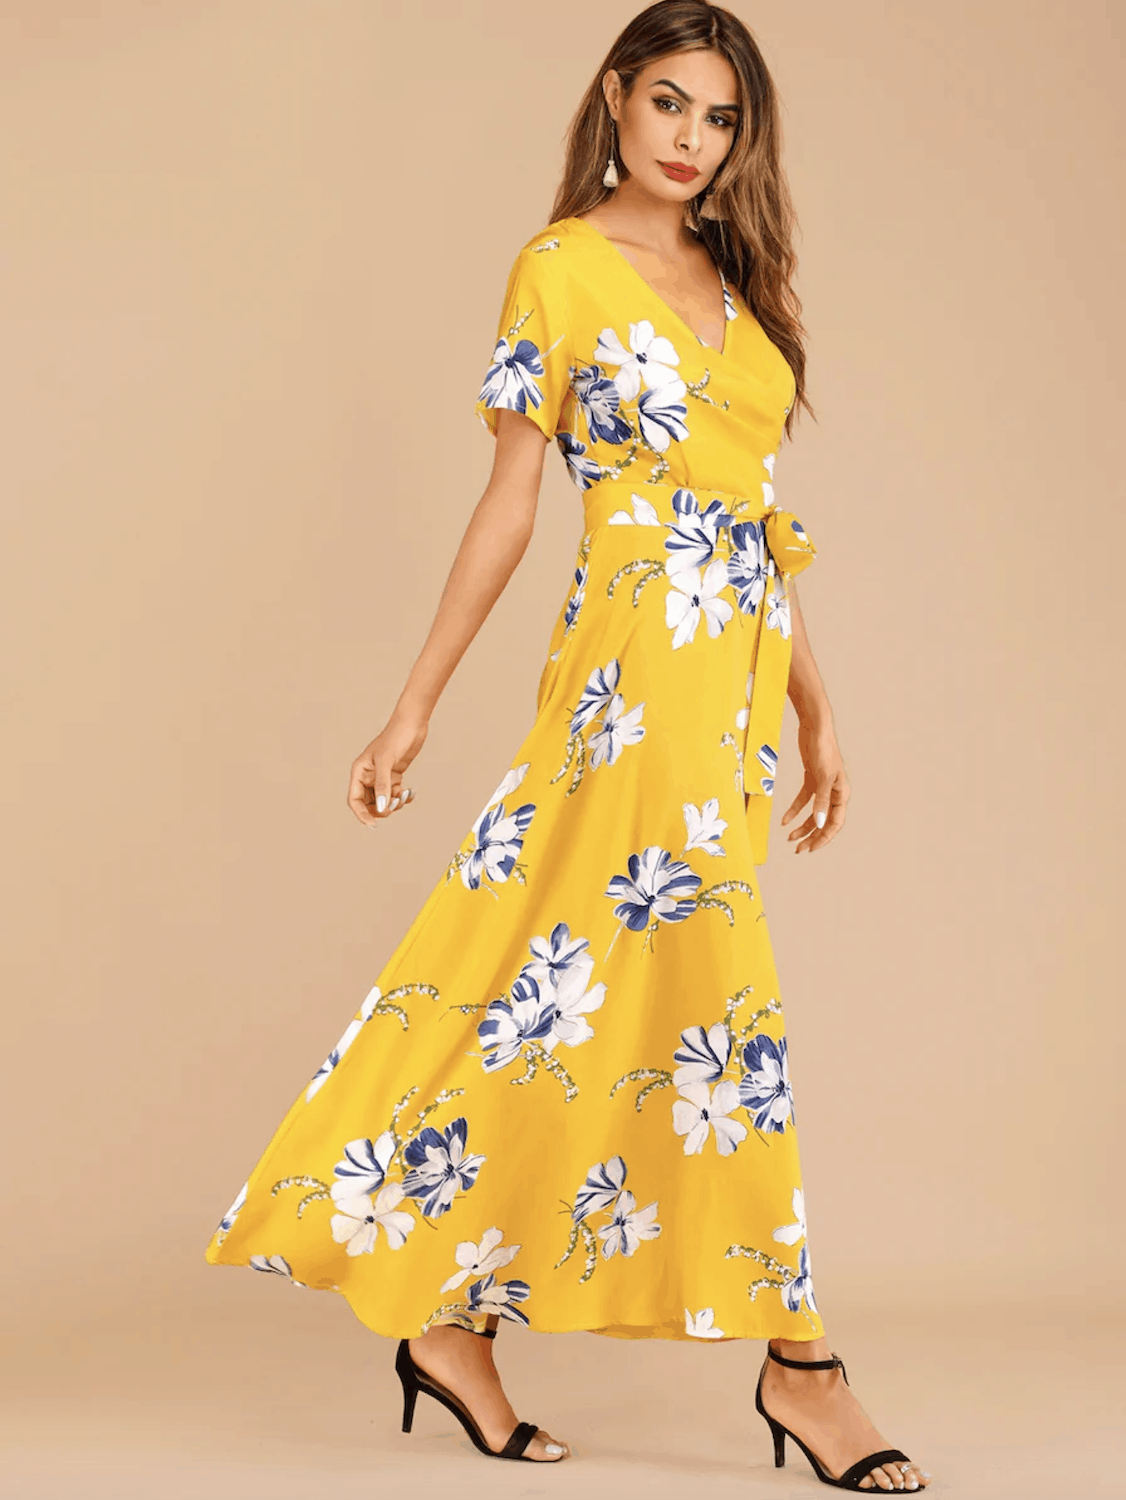 Summer Honeymoon Outfits for Her Yellow Floral Print Belted Dress 2